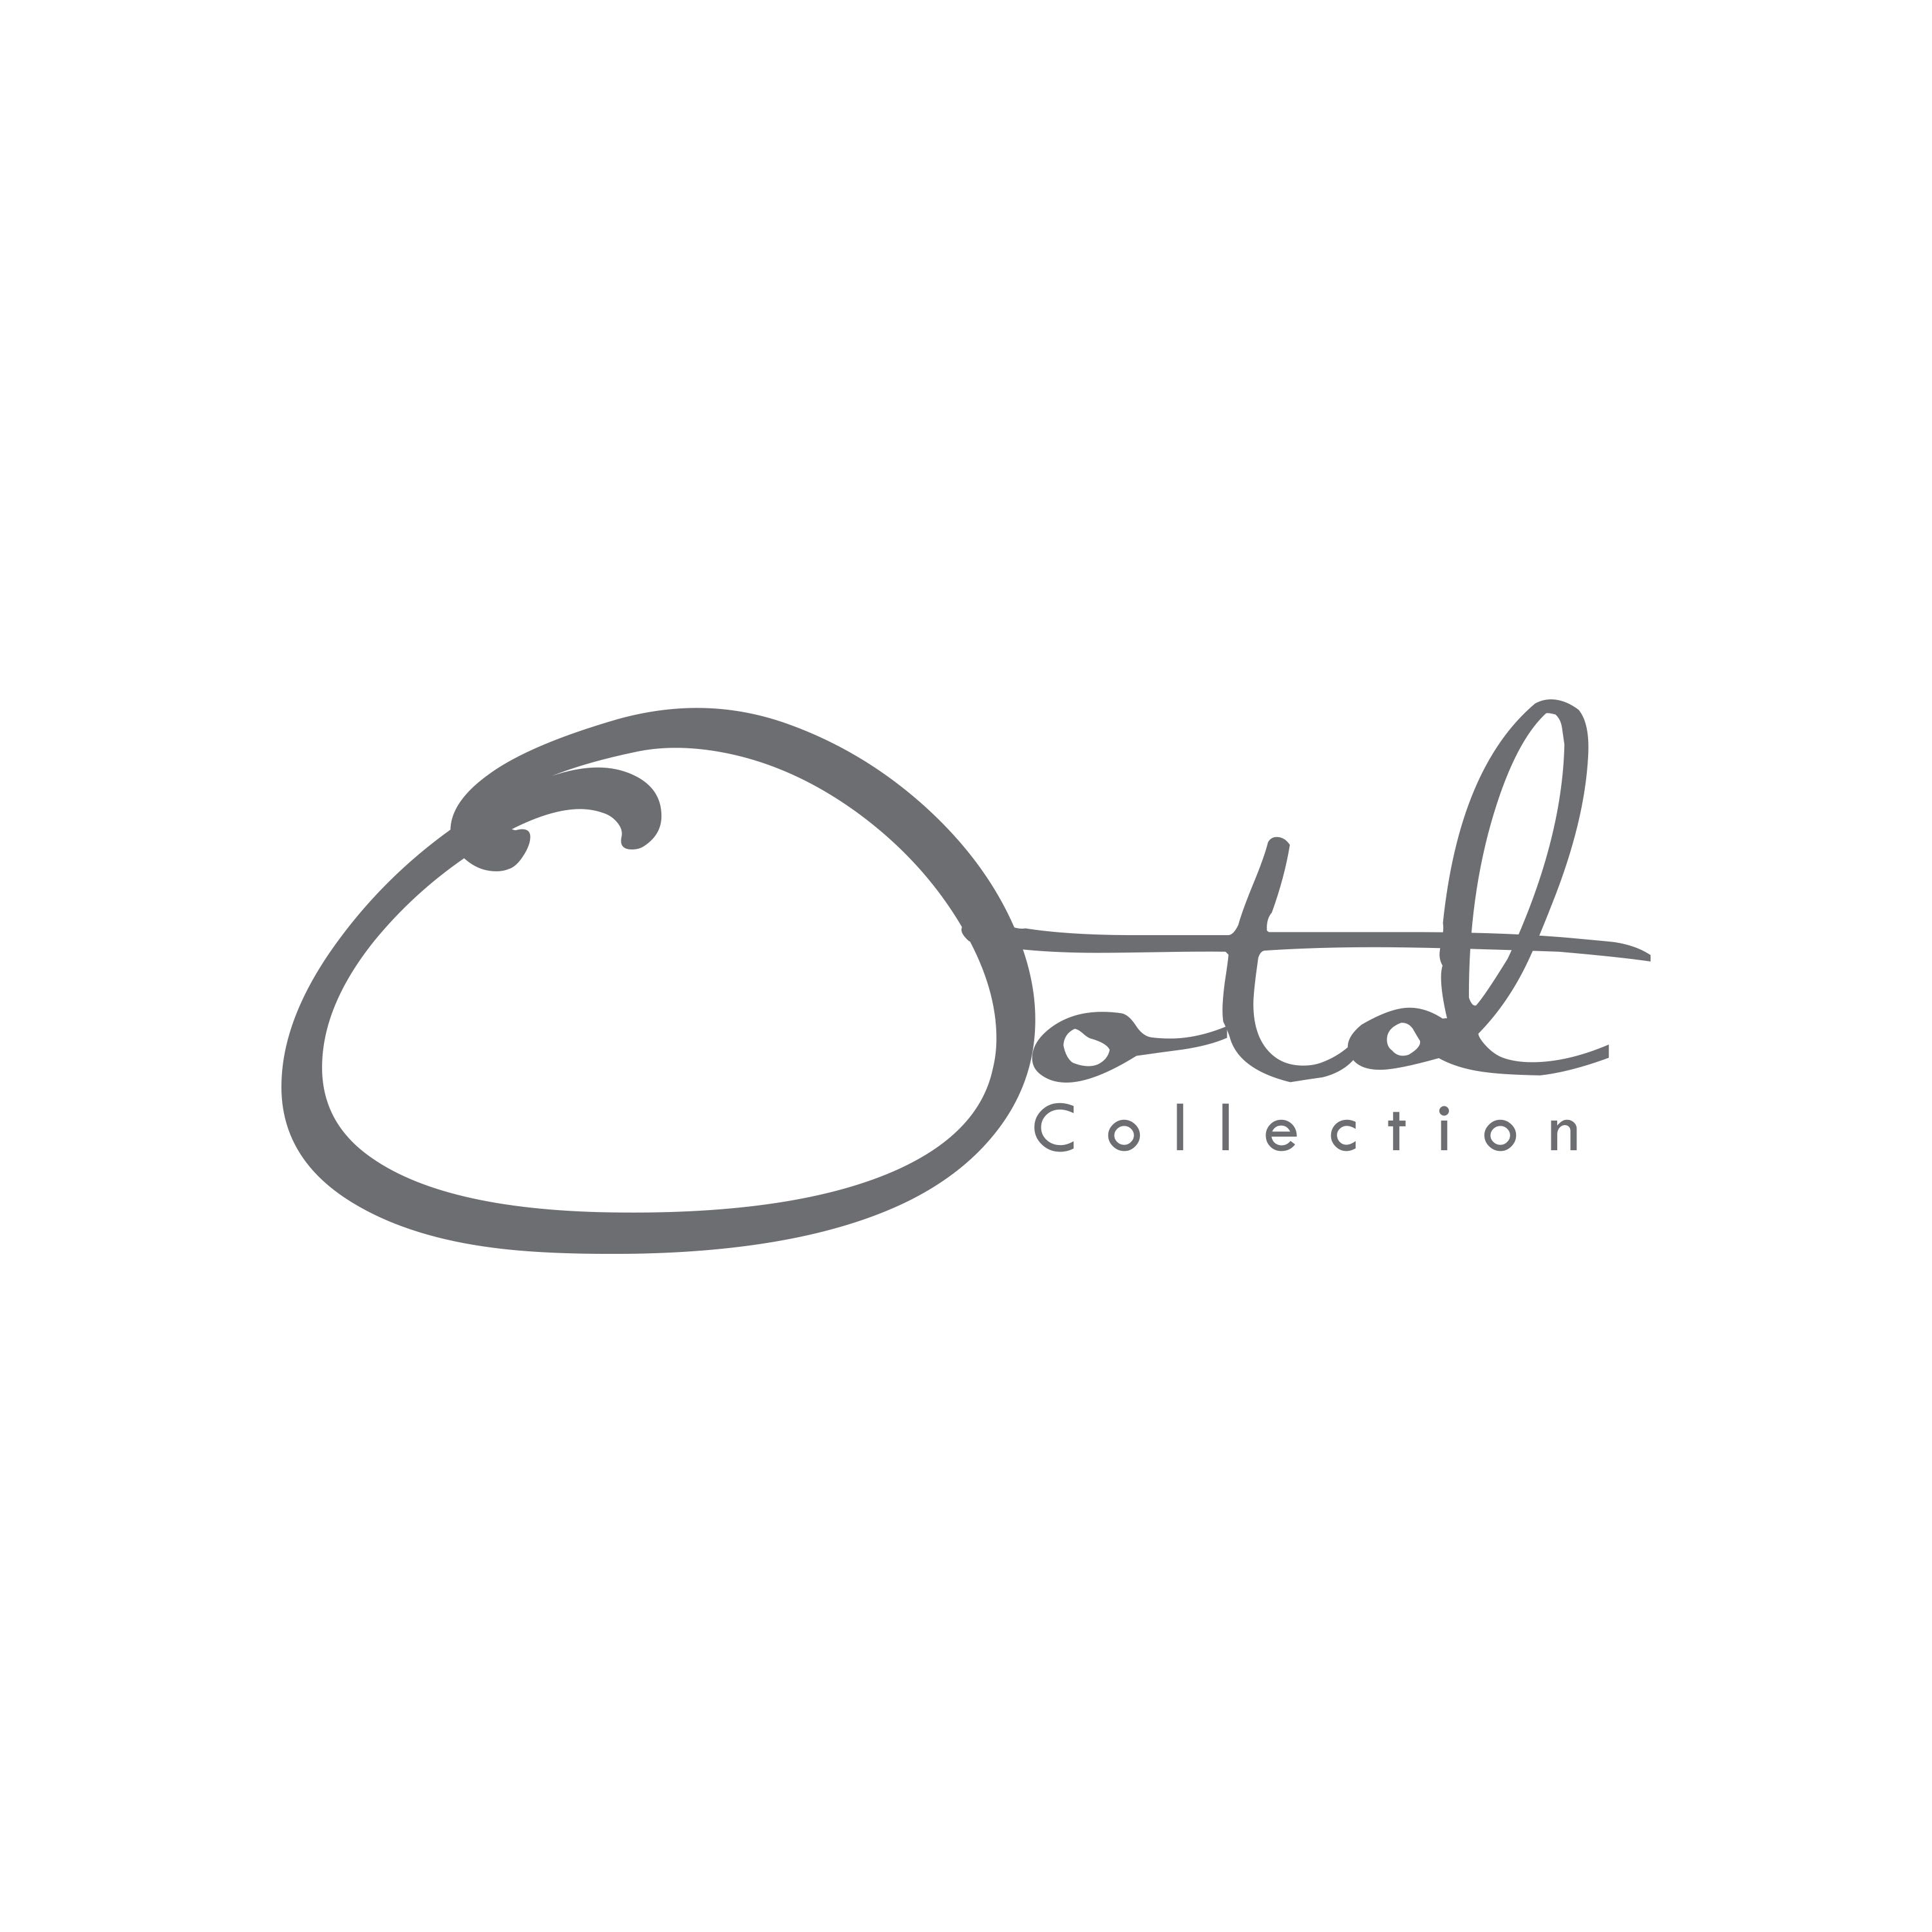 ootdcollection